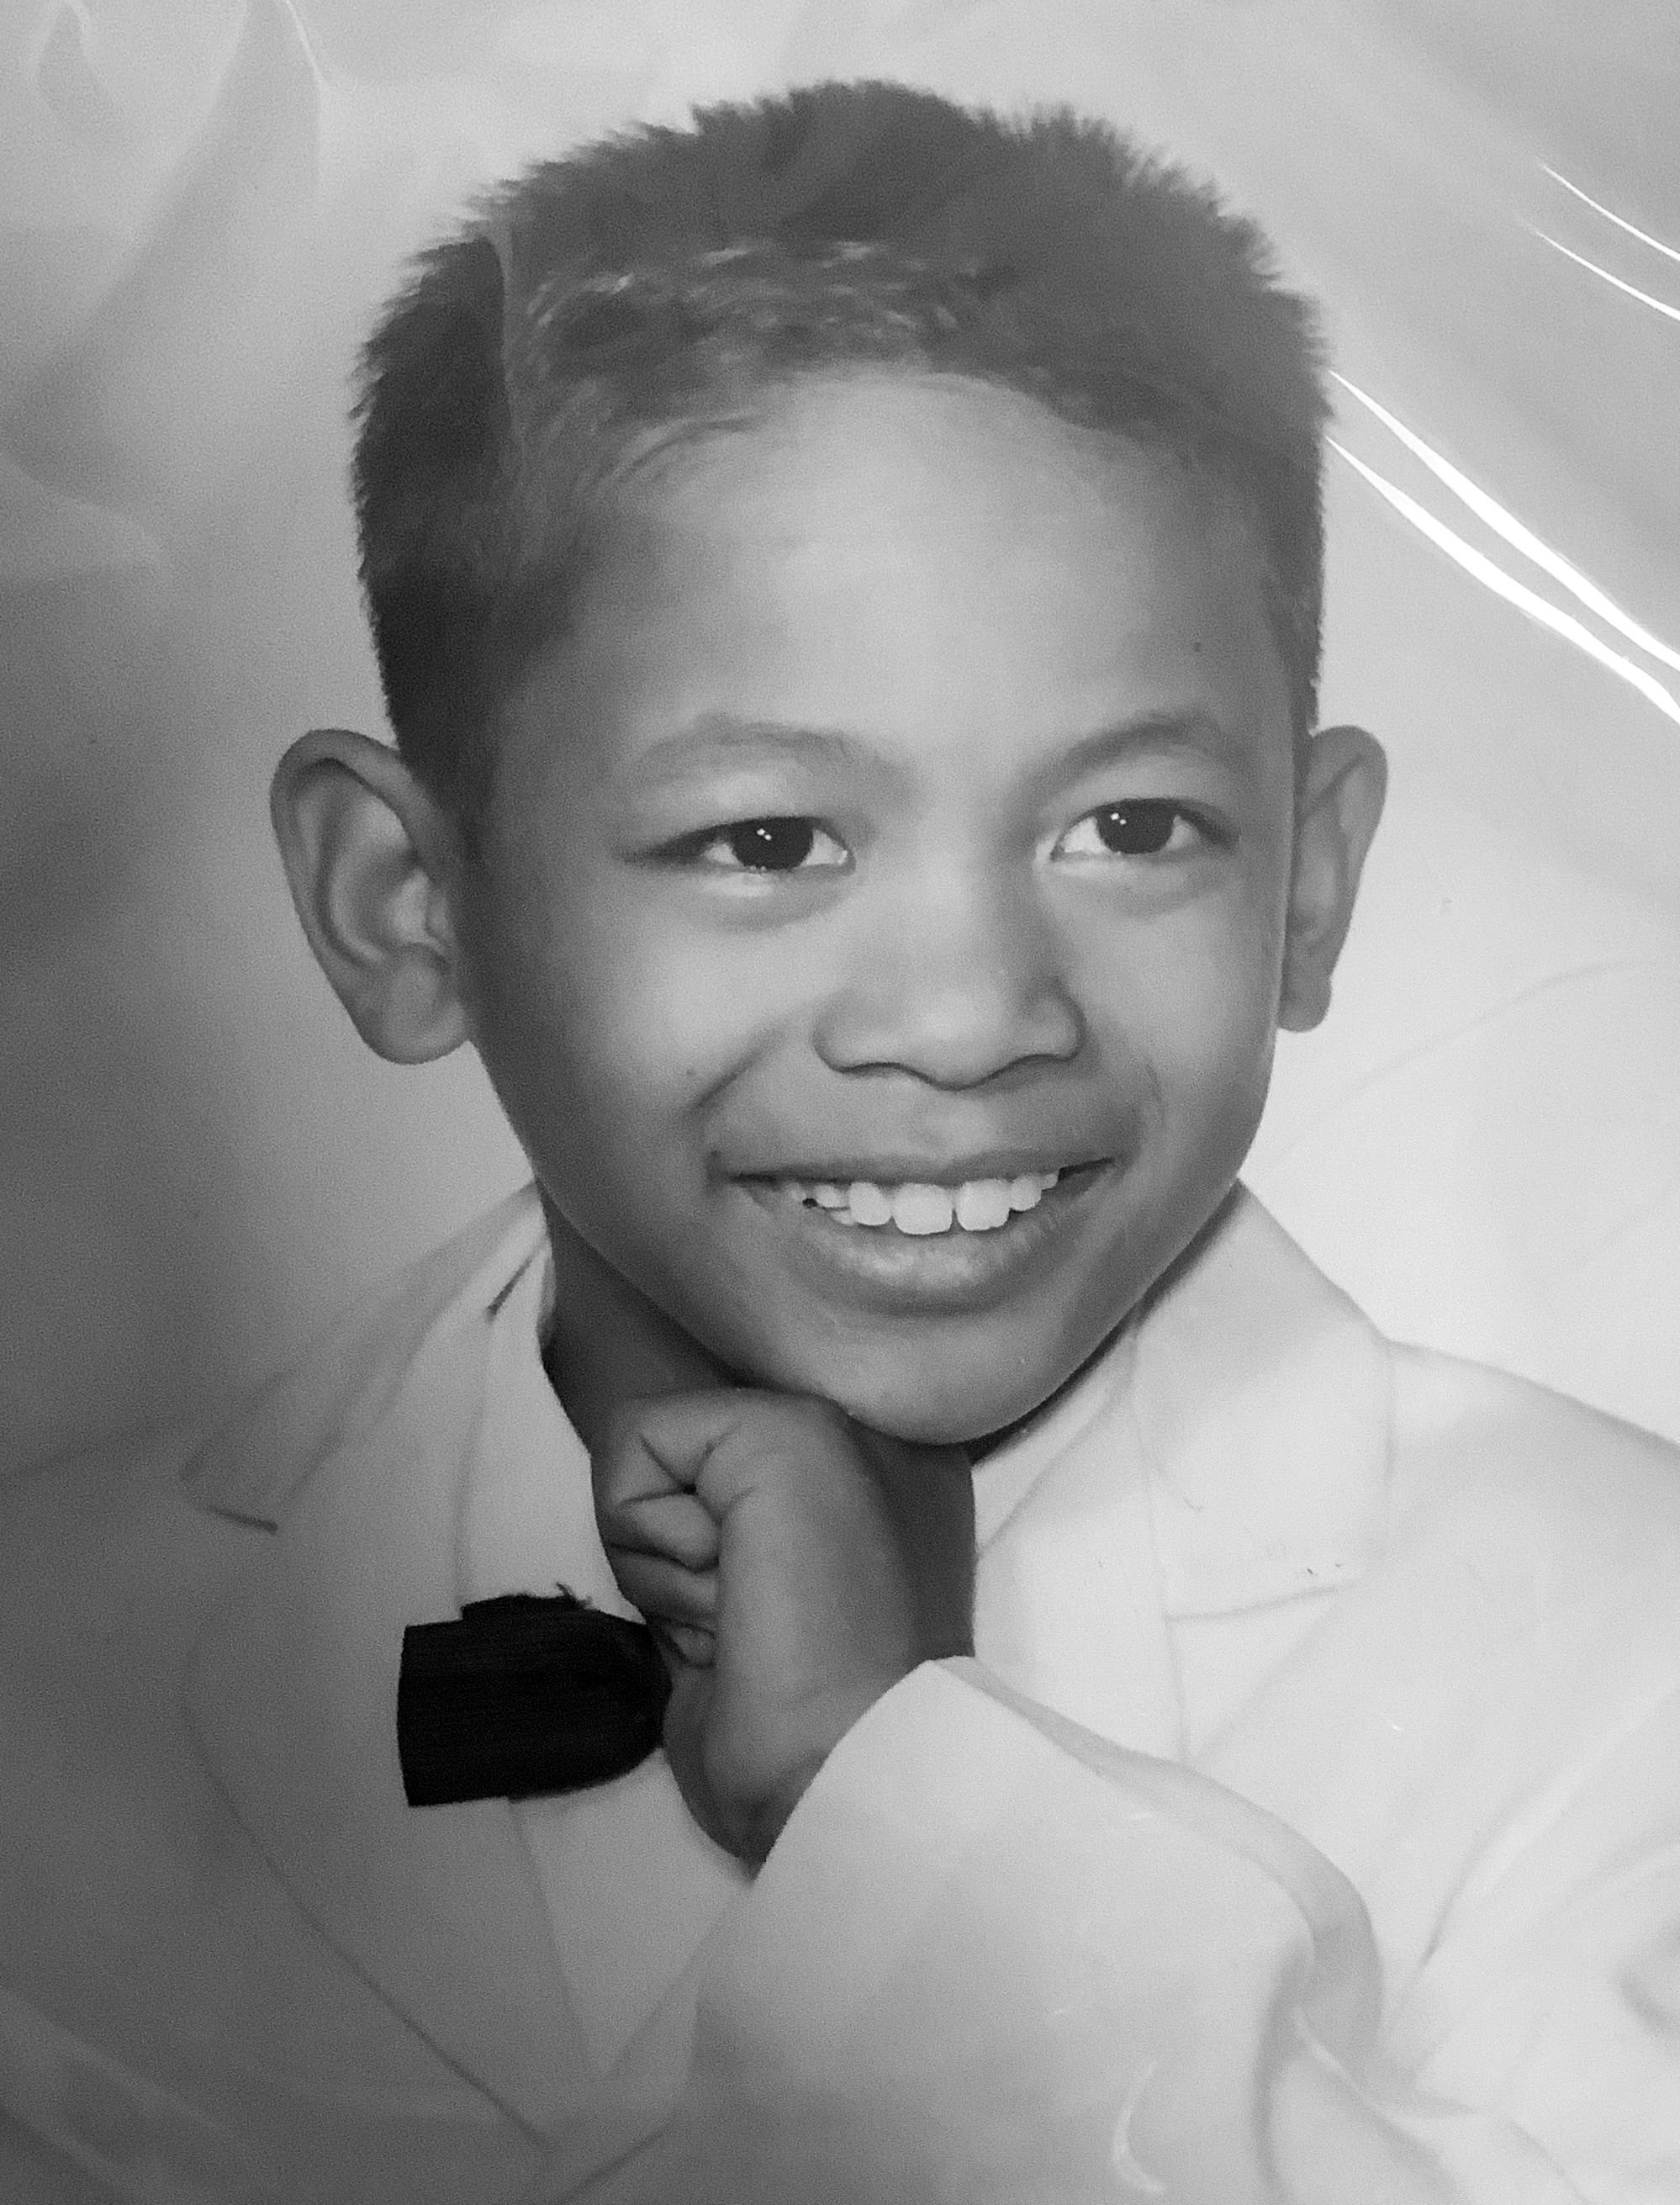 Mr. Cacanindin as a child